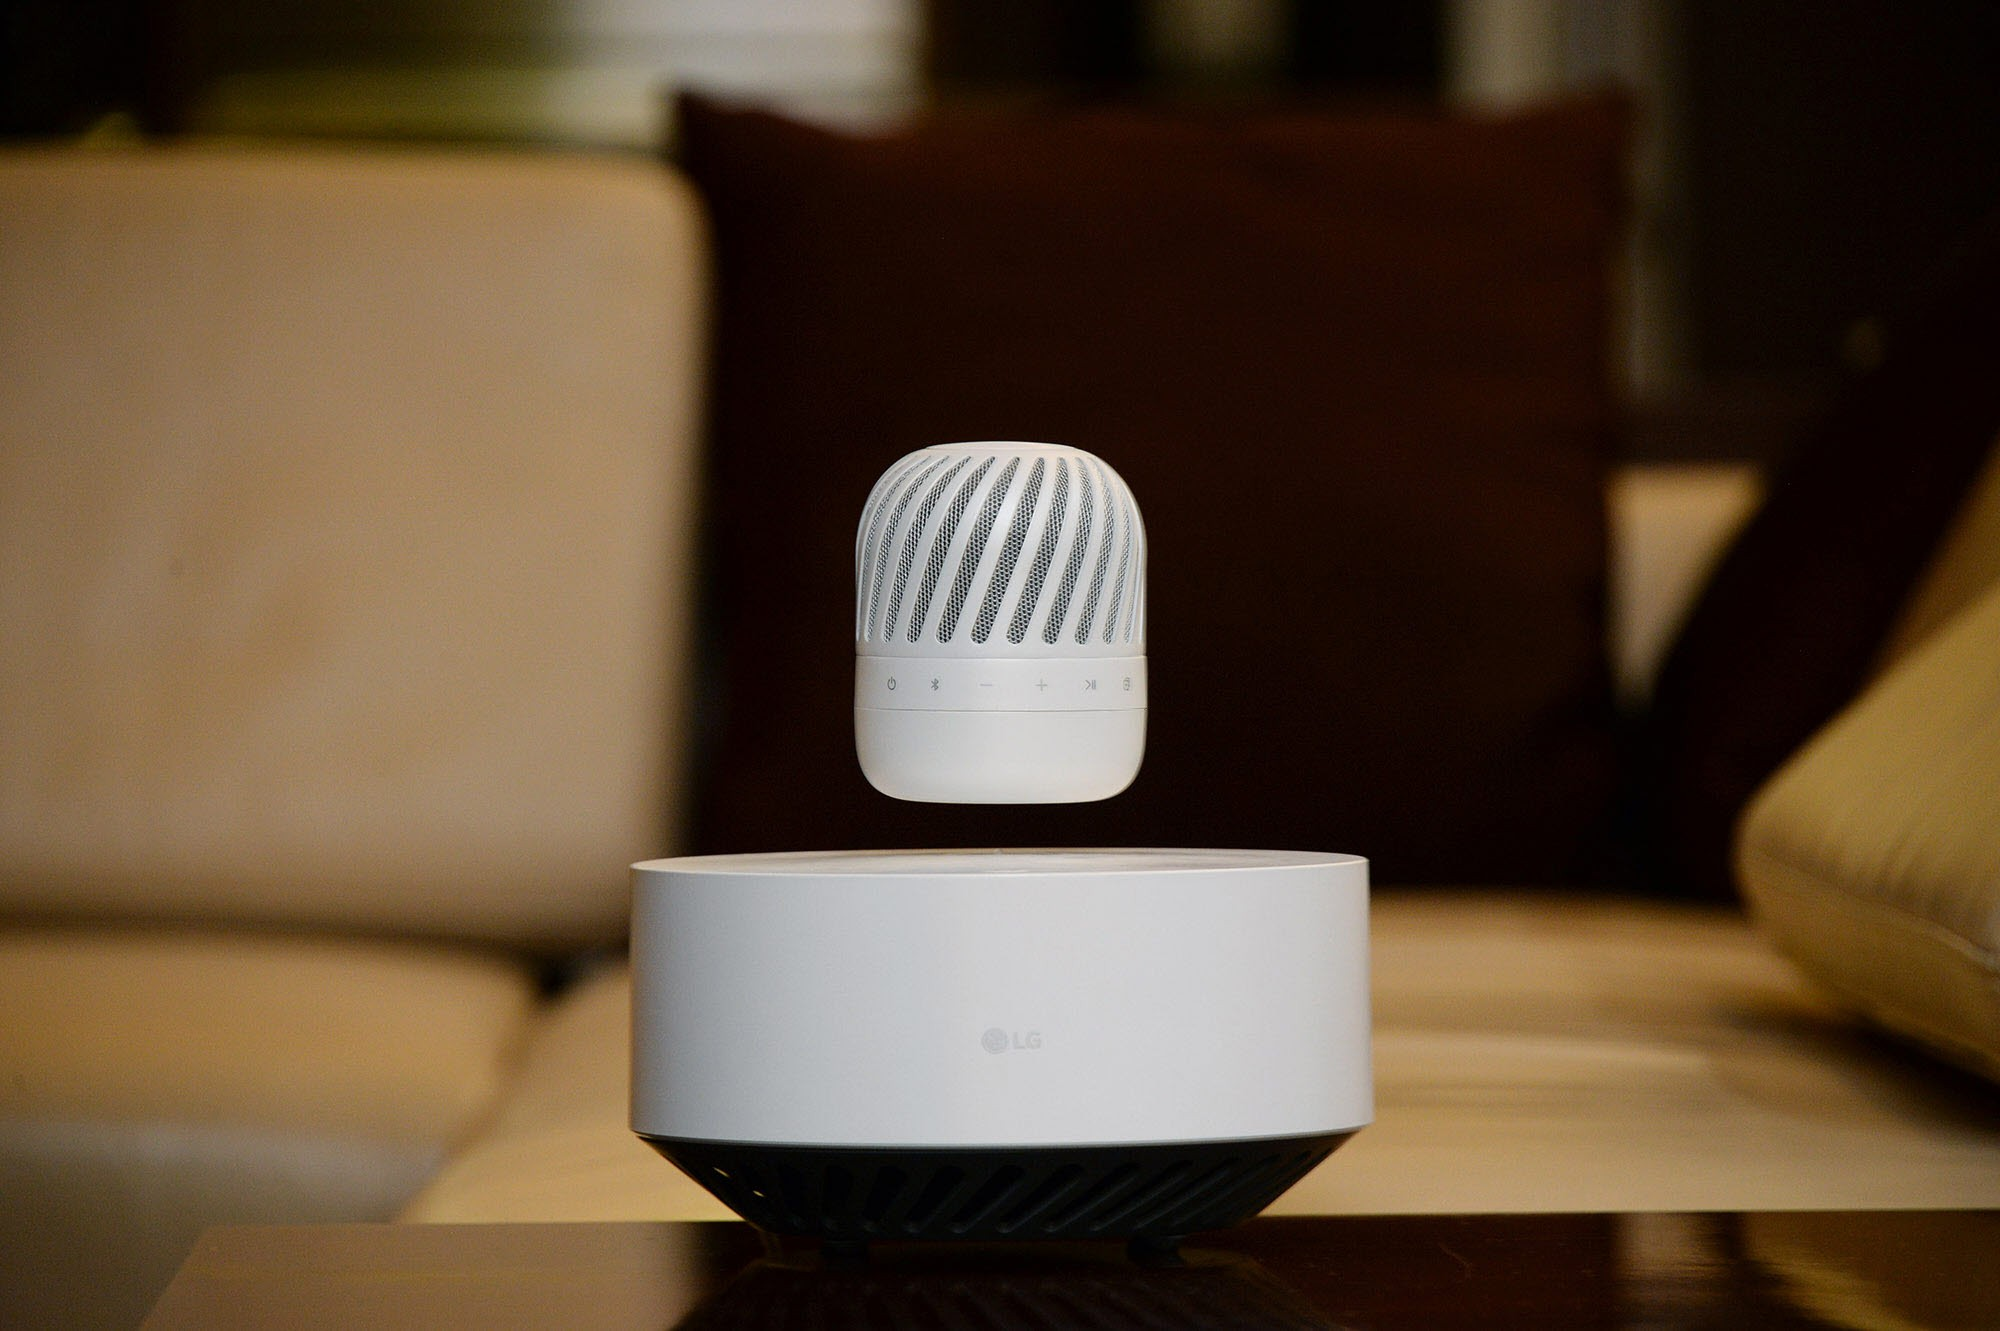 lg-levitating-portable-speaker_1